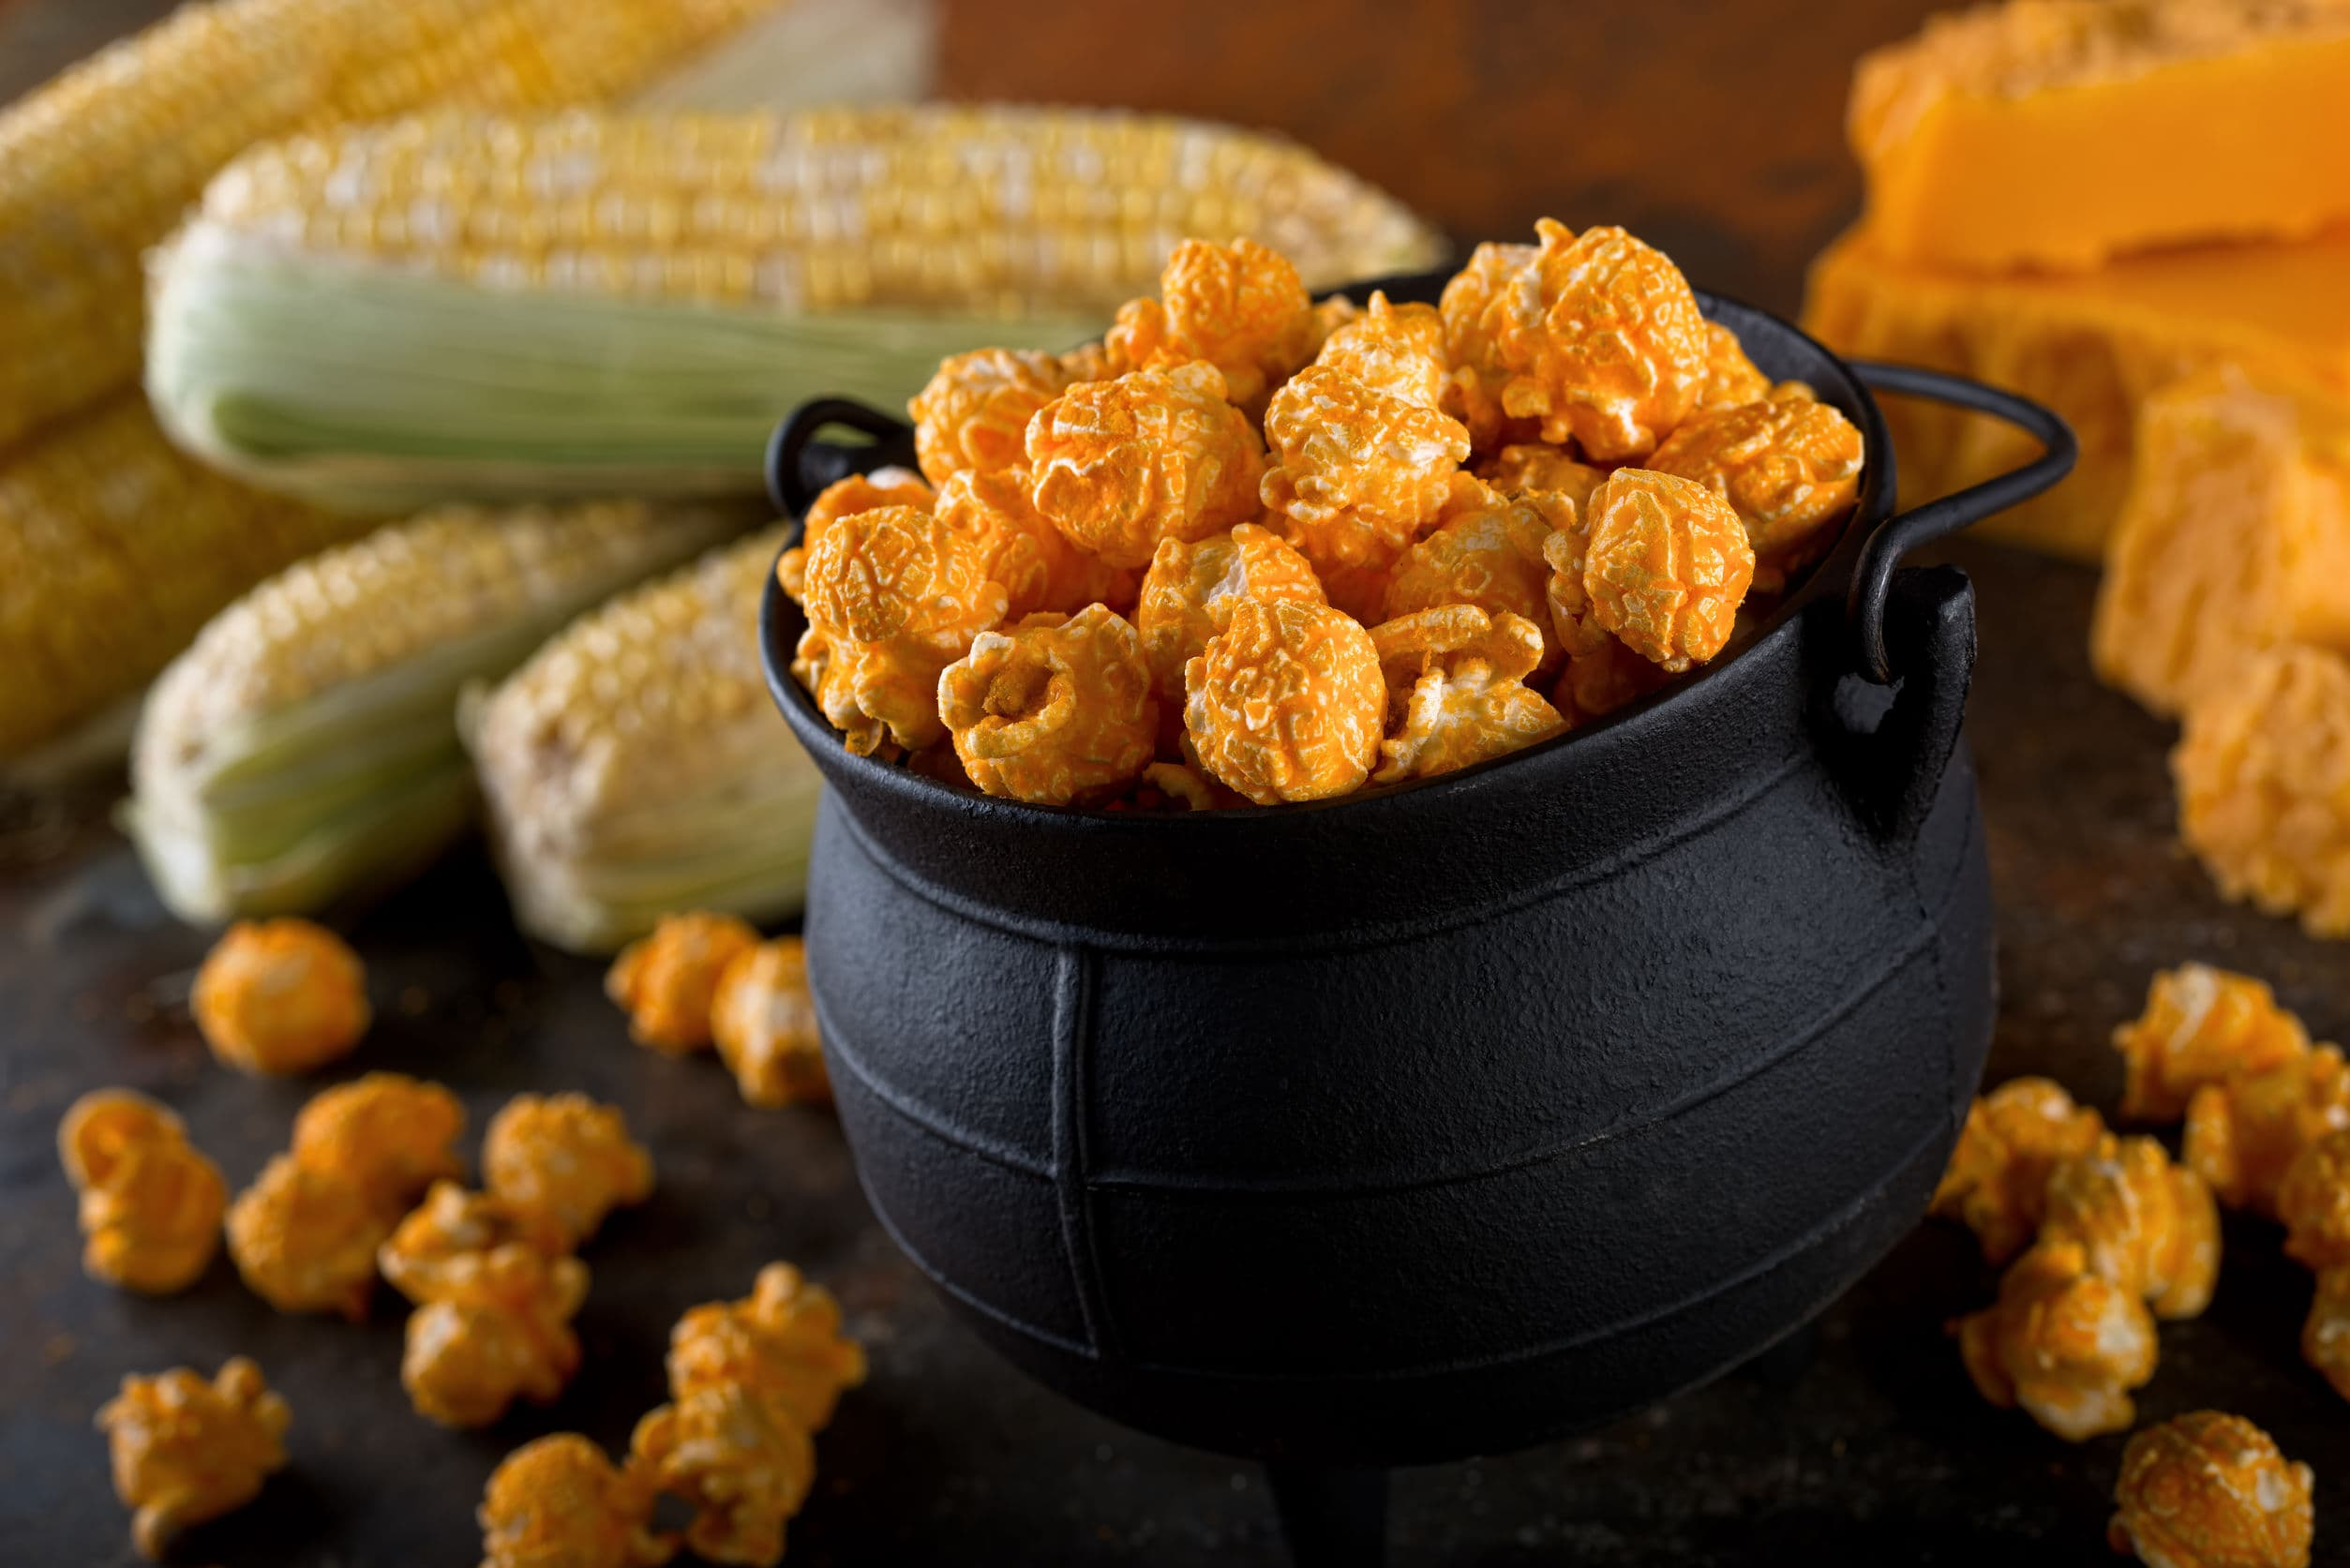 Kettle Corn Makes For A Great Appetizer